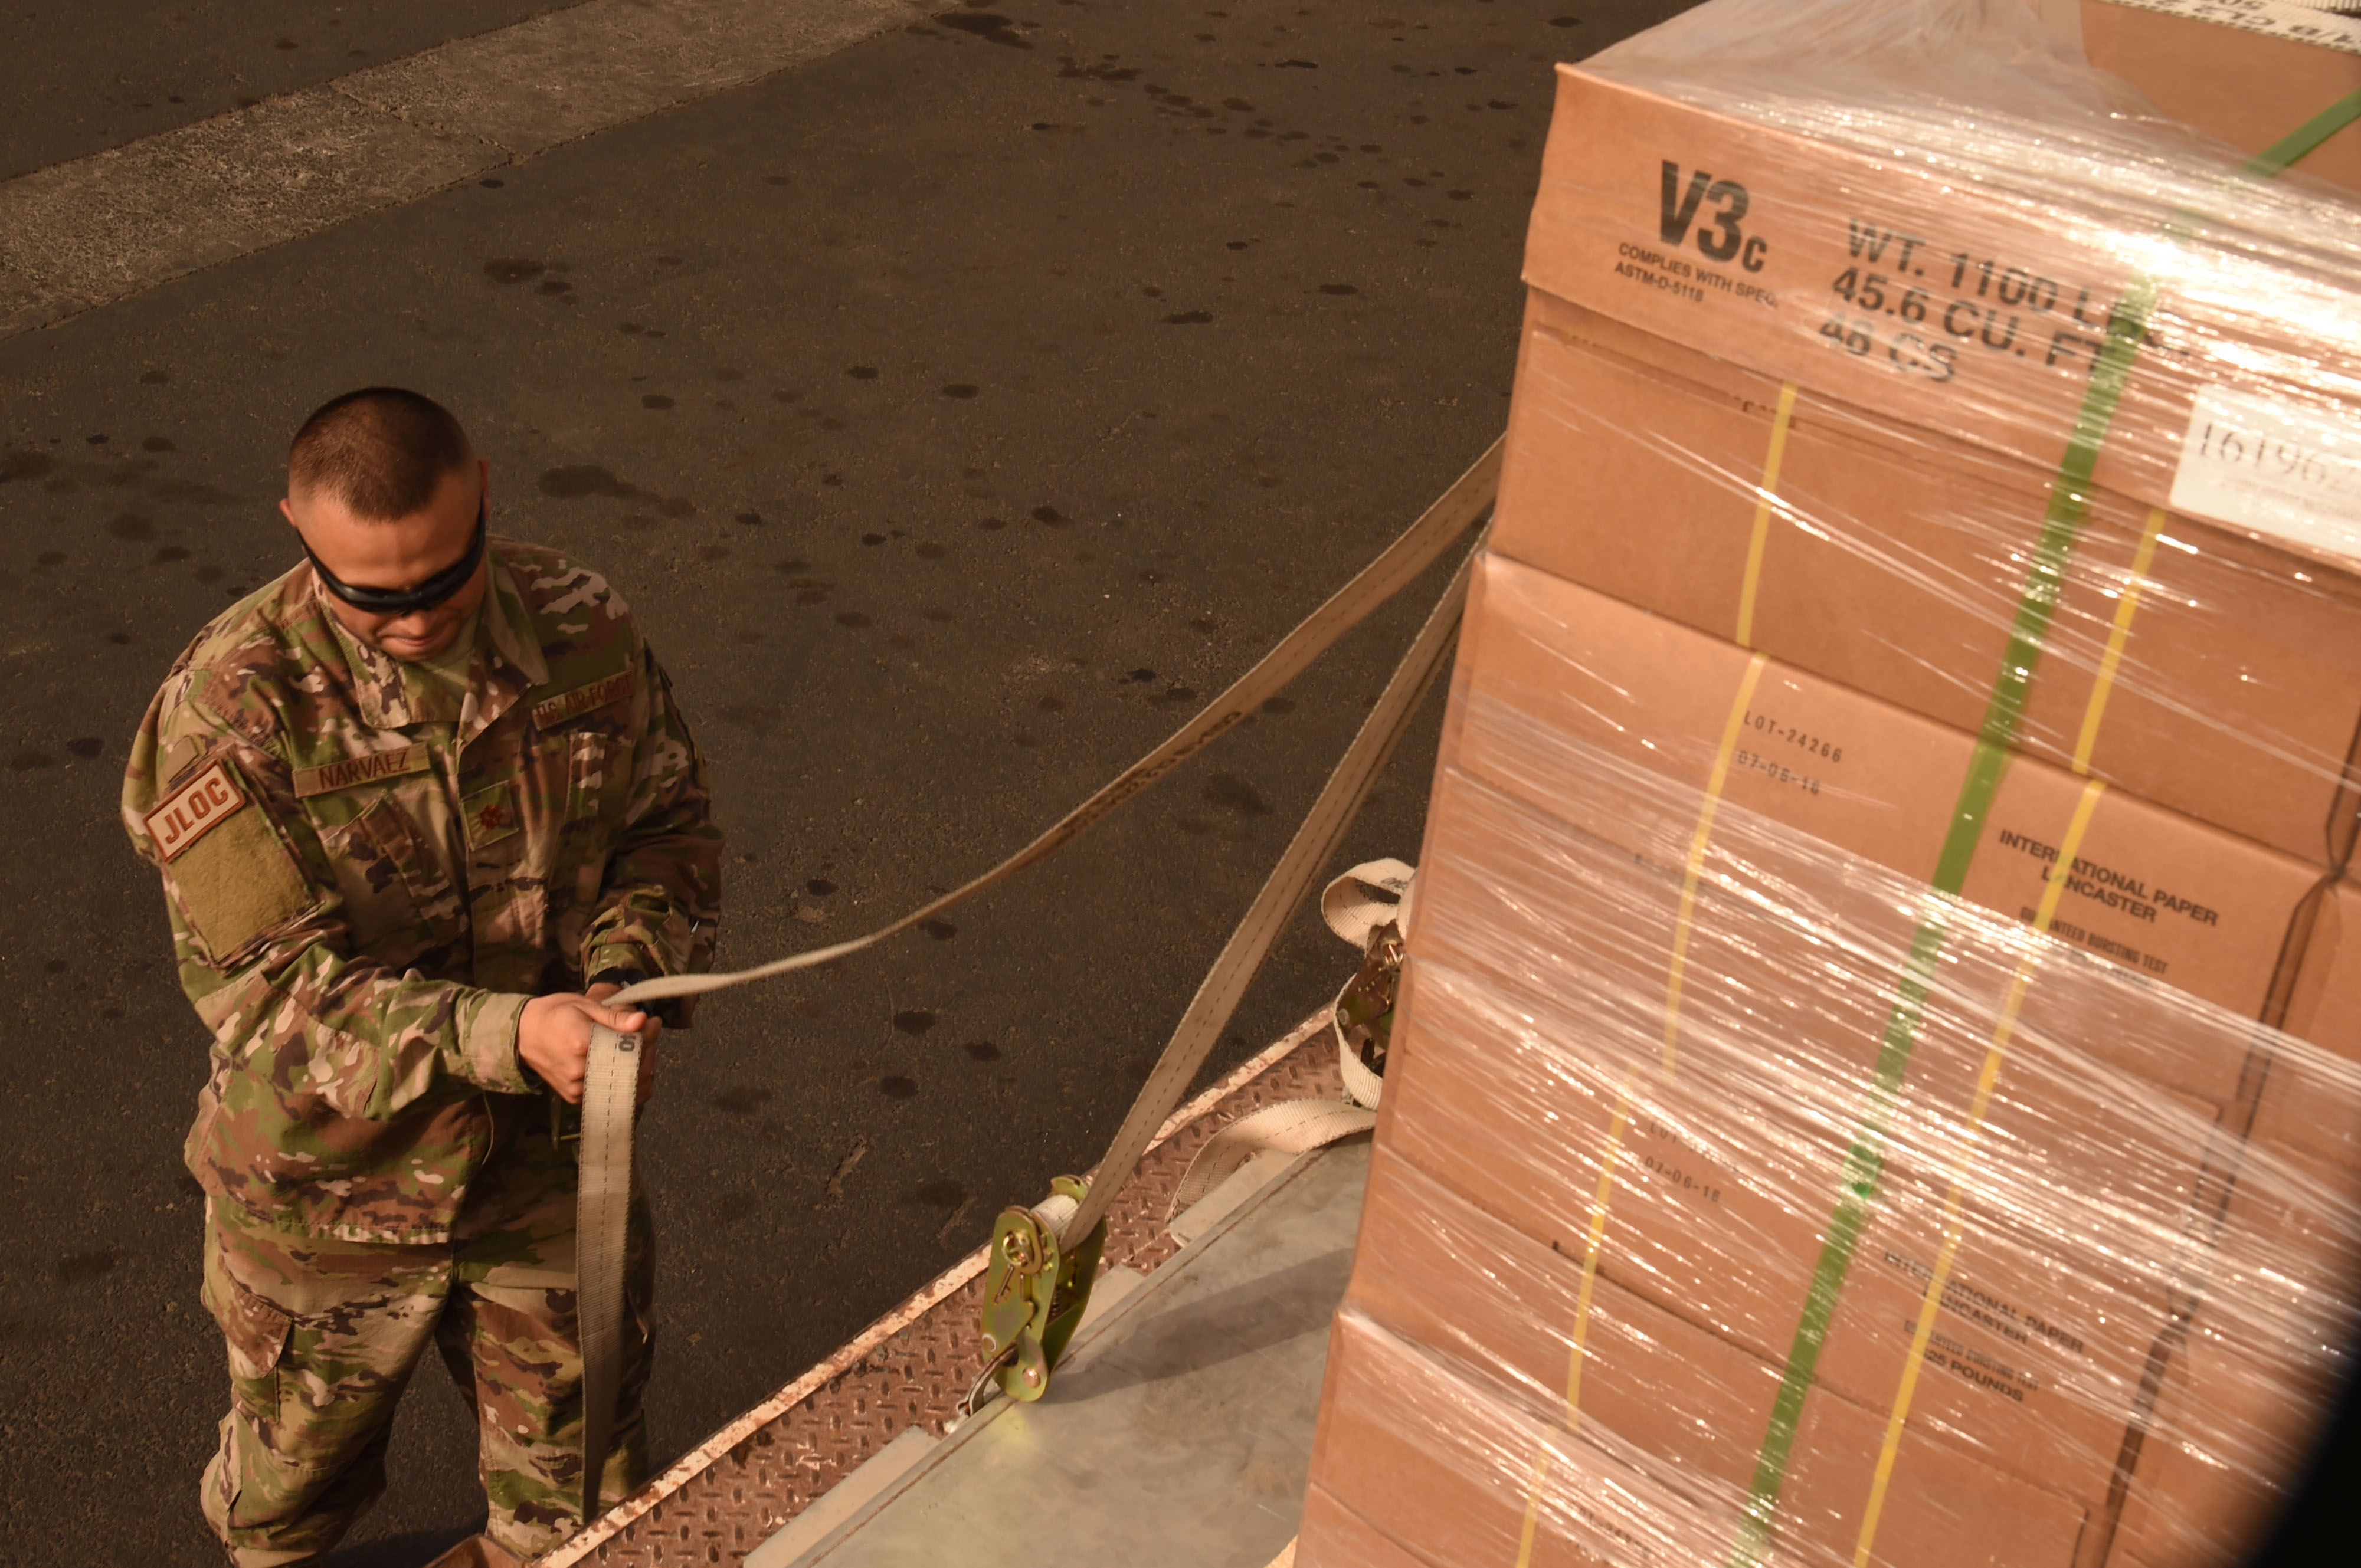 U.S. Air Force Maj. Christopher Narvaez, CJTF-HOA Joint Logistics Operations Center deputy branch chief, helps to tie down the pallet readied for the Air Transportation and Refueling Exchange of Service (ATARES) proof-of-concept mission, at the Djibouti International Airport, Djibouti, June 6, 2017. ATARES is a mutually accepted cash-free exchange of services between nations that provides support in air force activity, to include airlift, air refueling, aeromedical evacuation, and flight simulations. (U.S. Air National Guard Tech. Sgt. Andria Allmond)